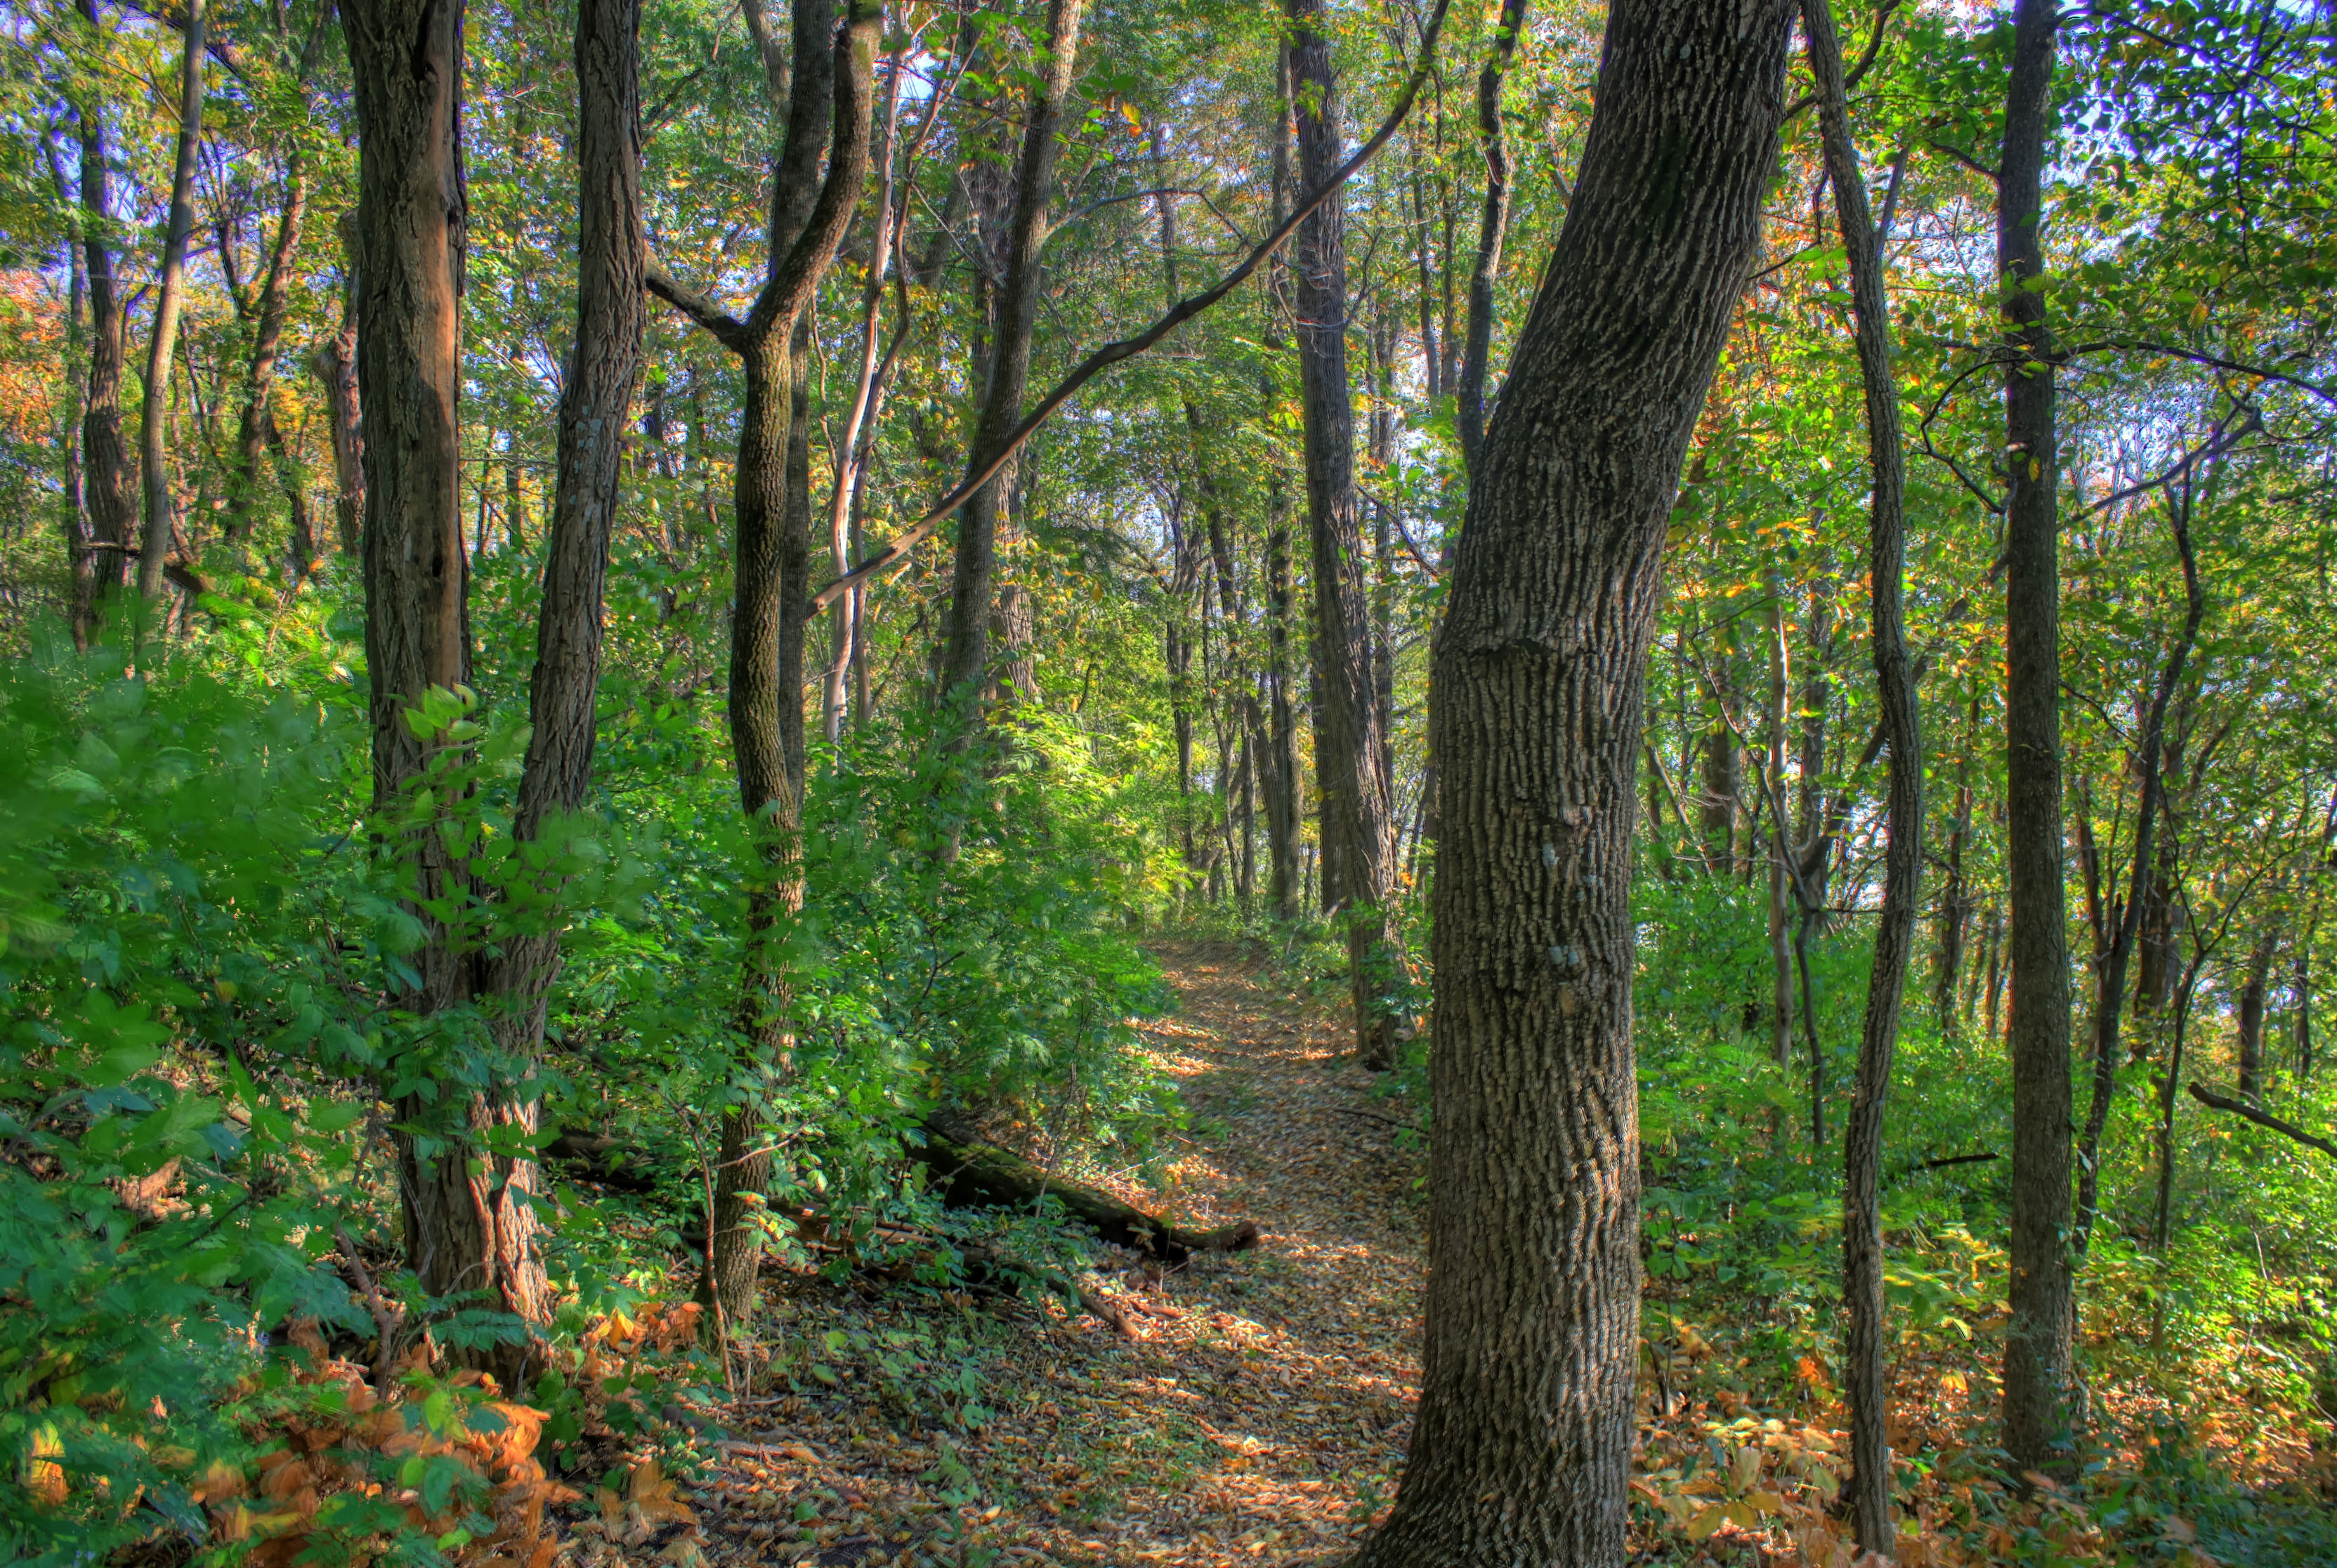 Hiking Trail In Woods At Belmont Mounds State Park